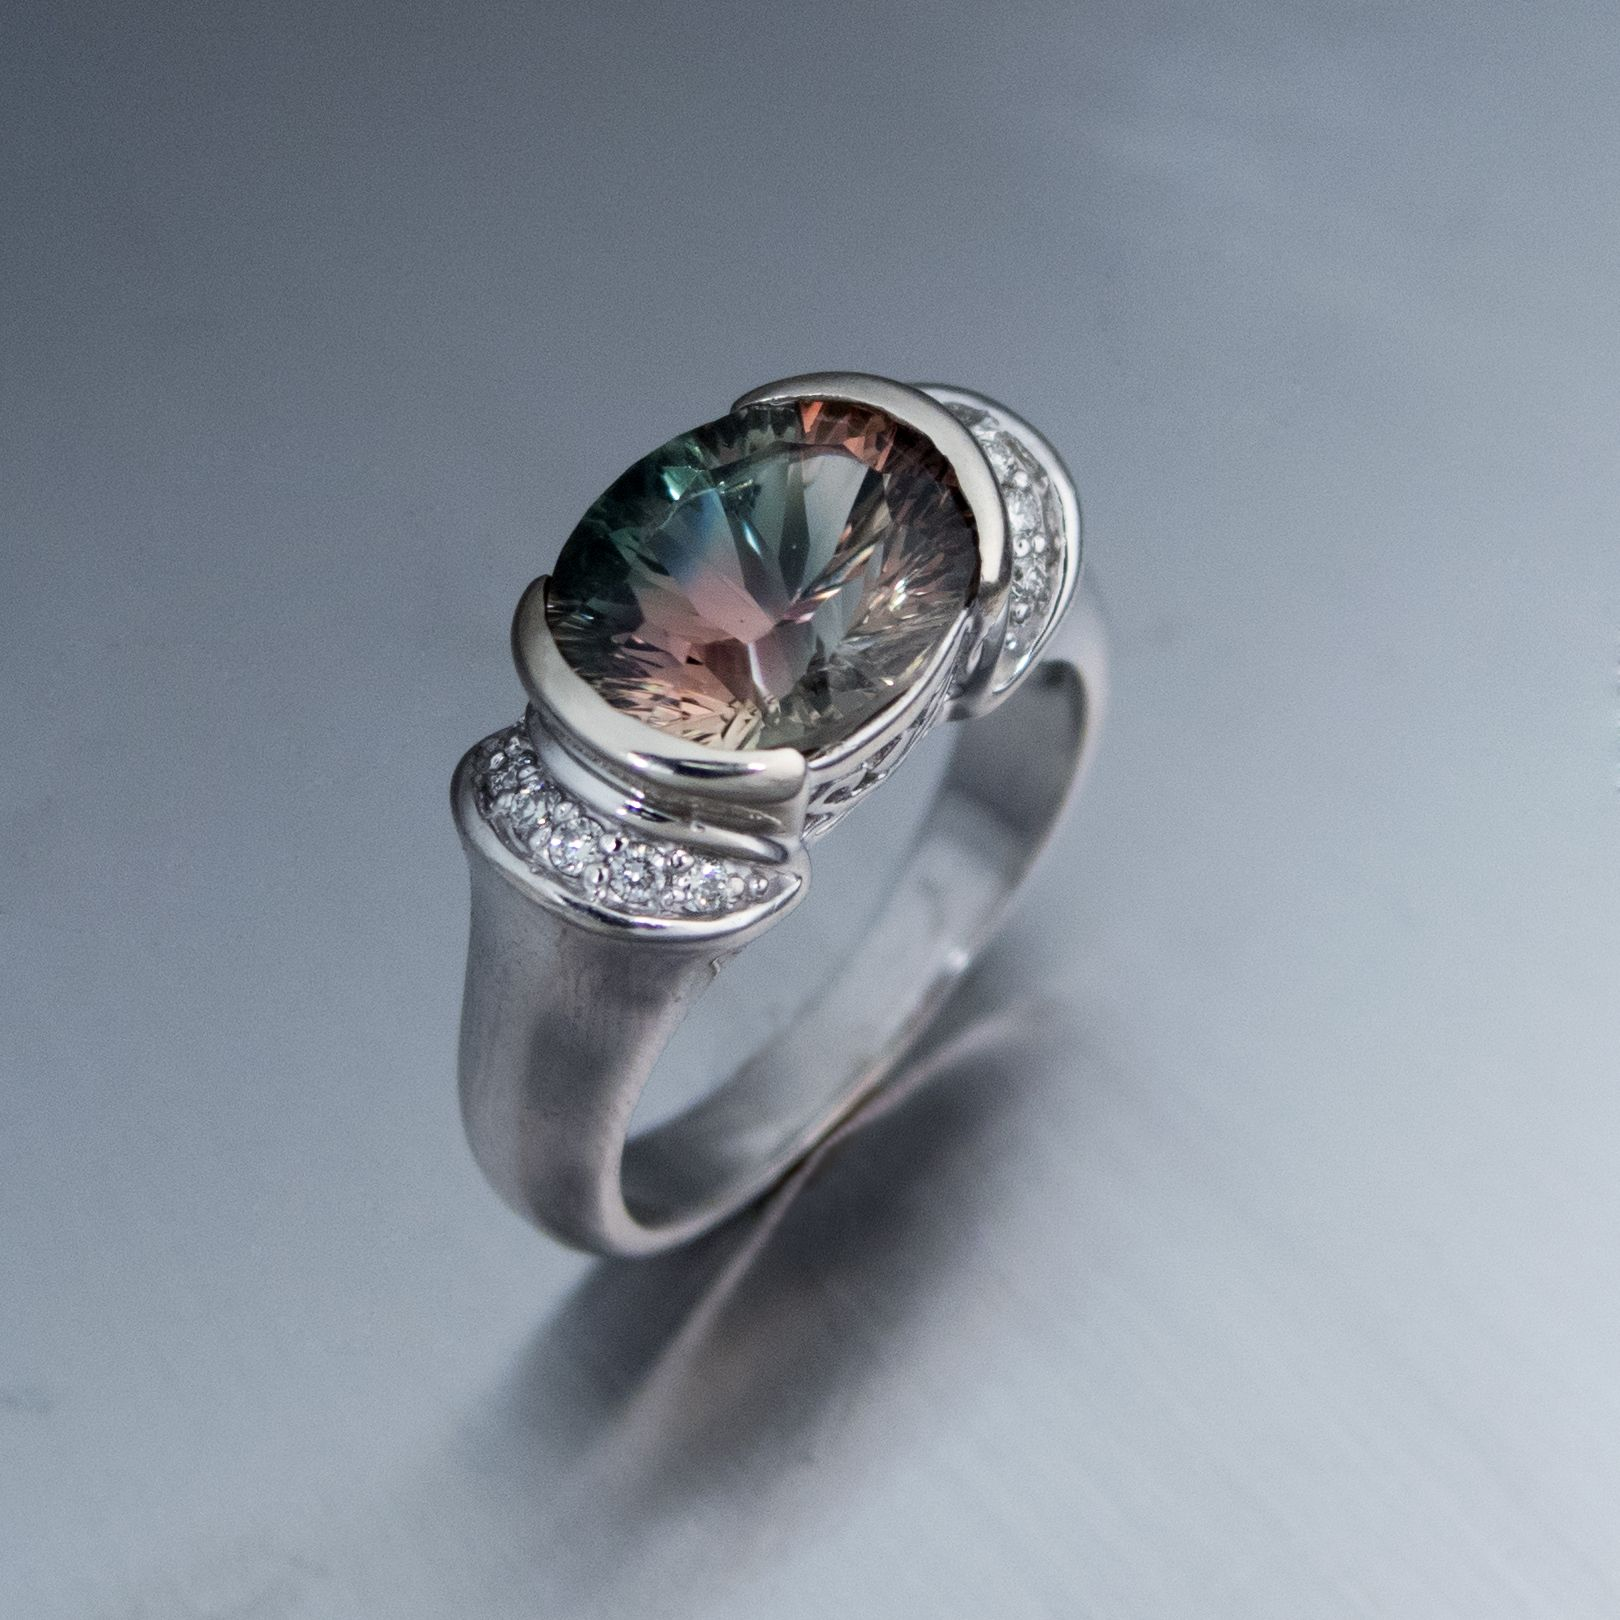 silver in bonsai rings engagement banks store oregon jewelry outer esther garden ringaqua nc s file sunstone gallery